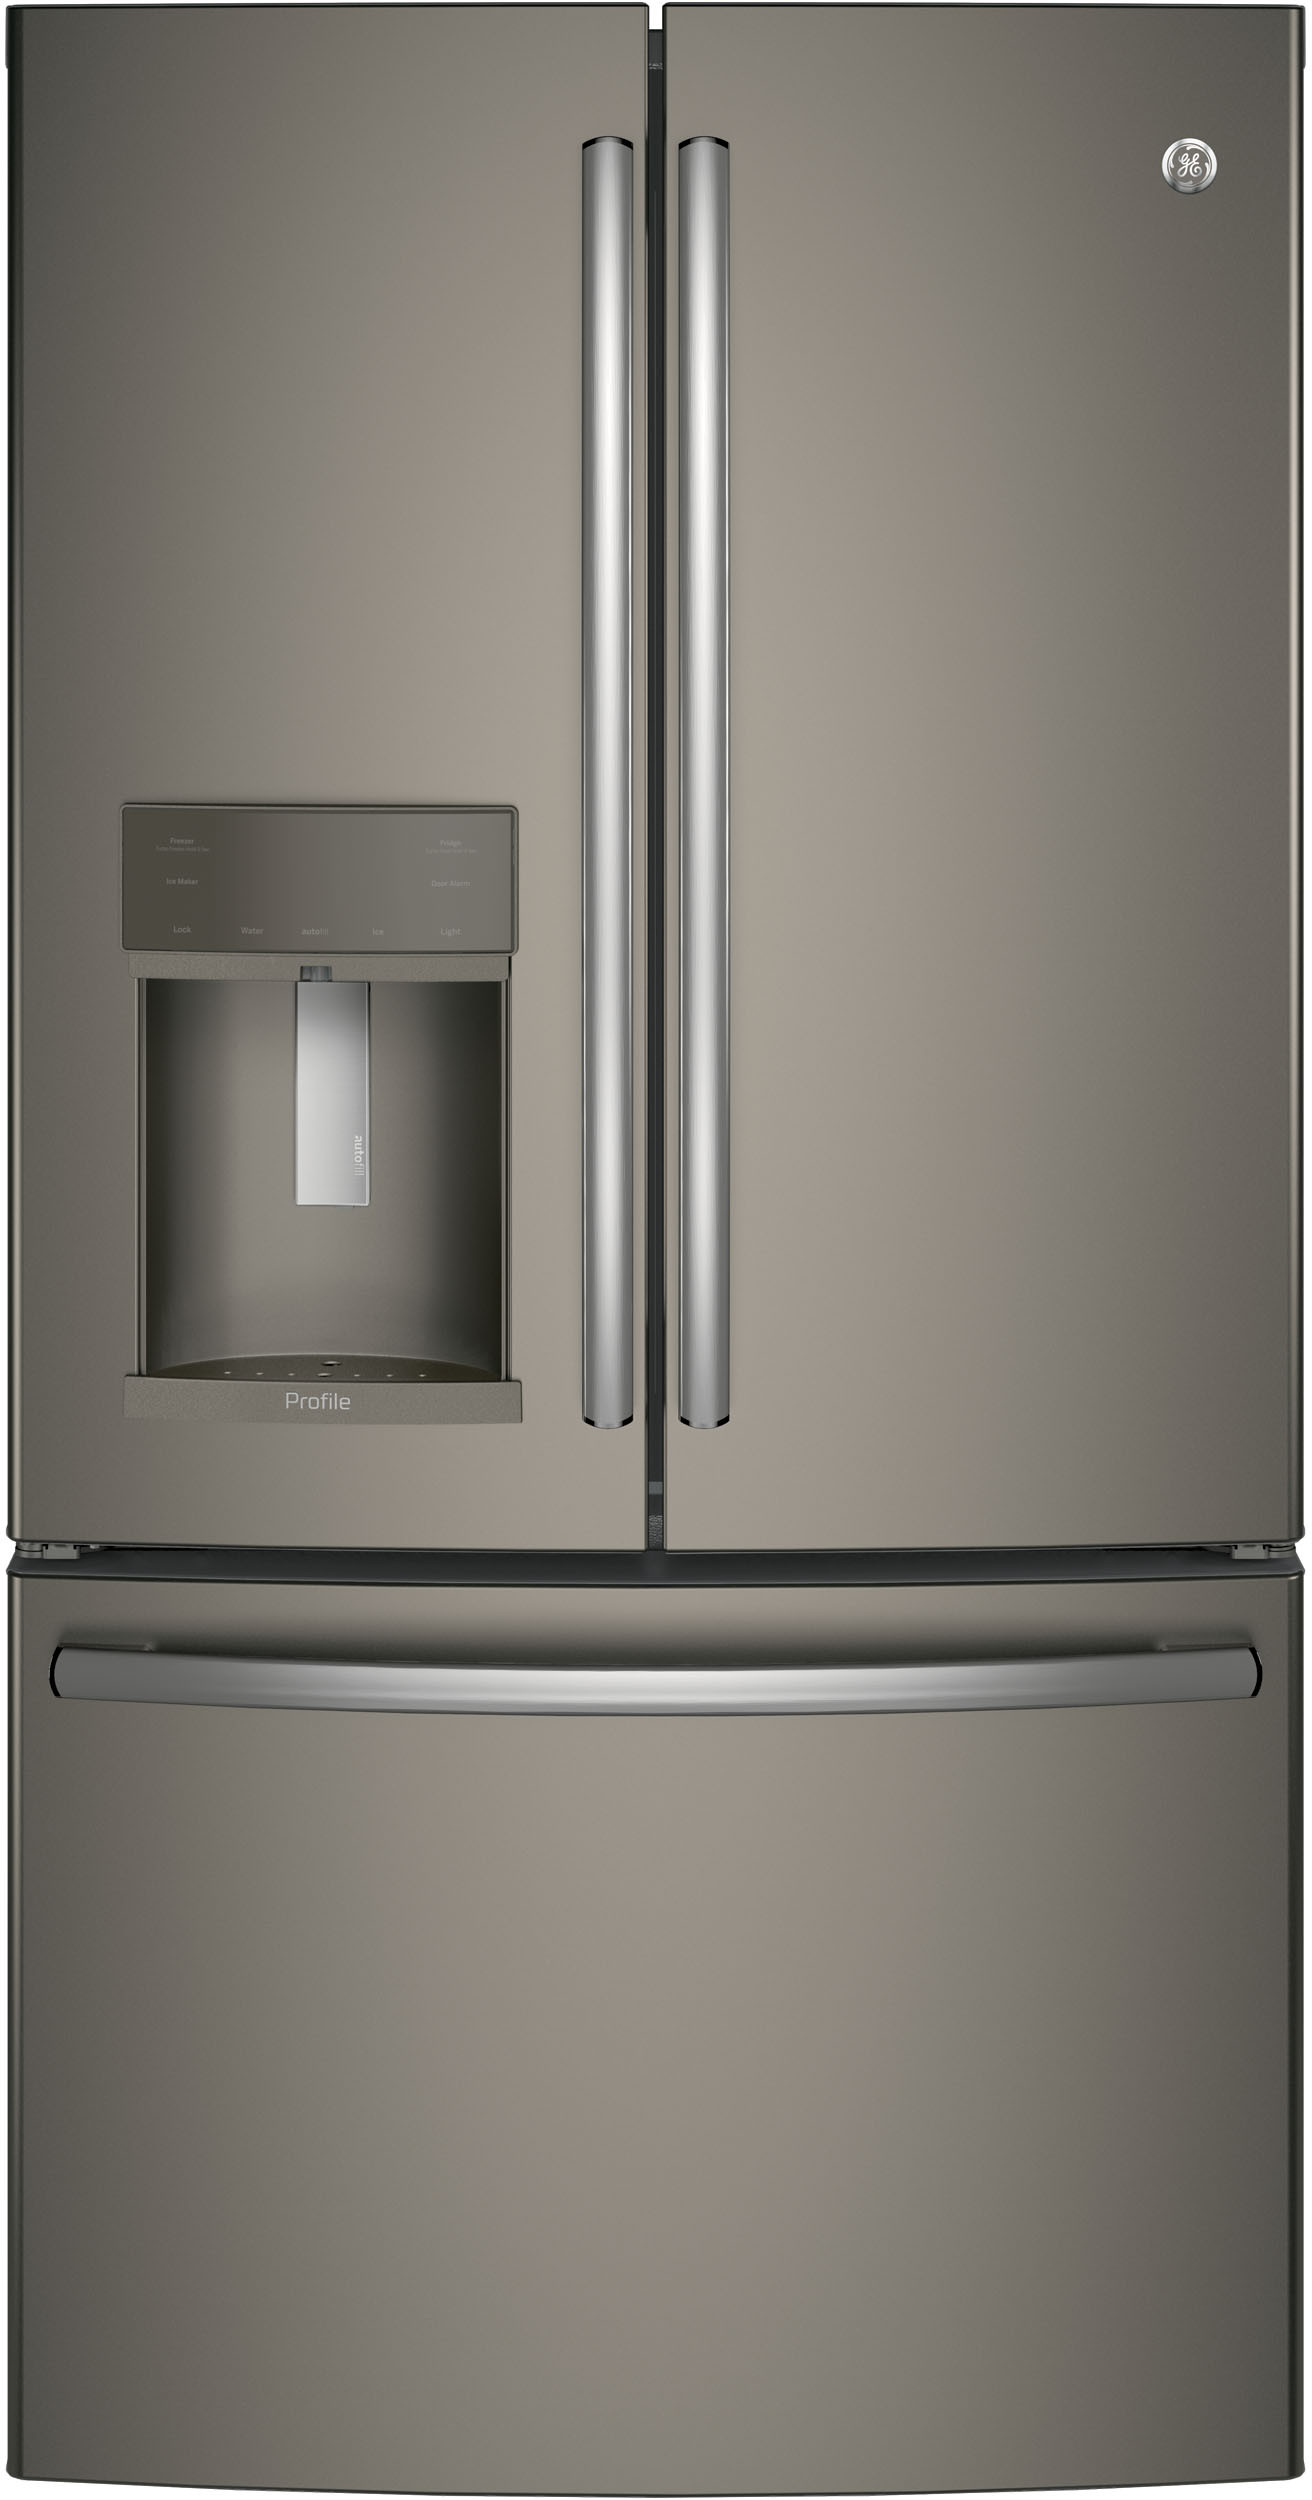 GE Refrigerators, Profile & Side by Side Refrigerators | AJ Madison